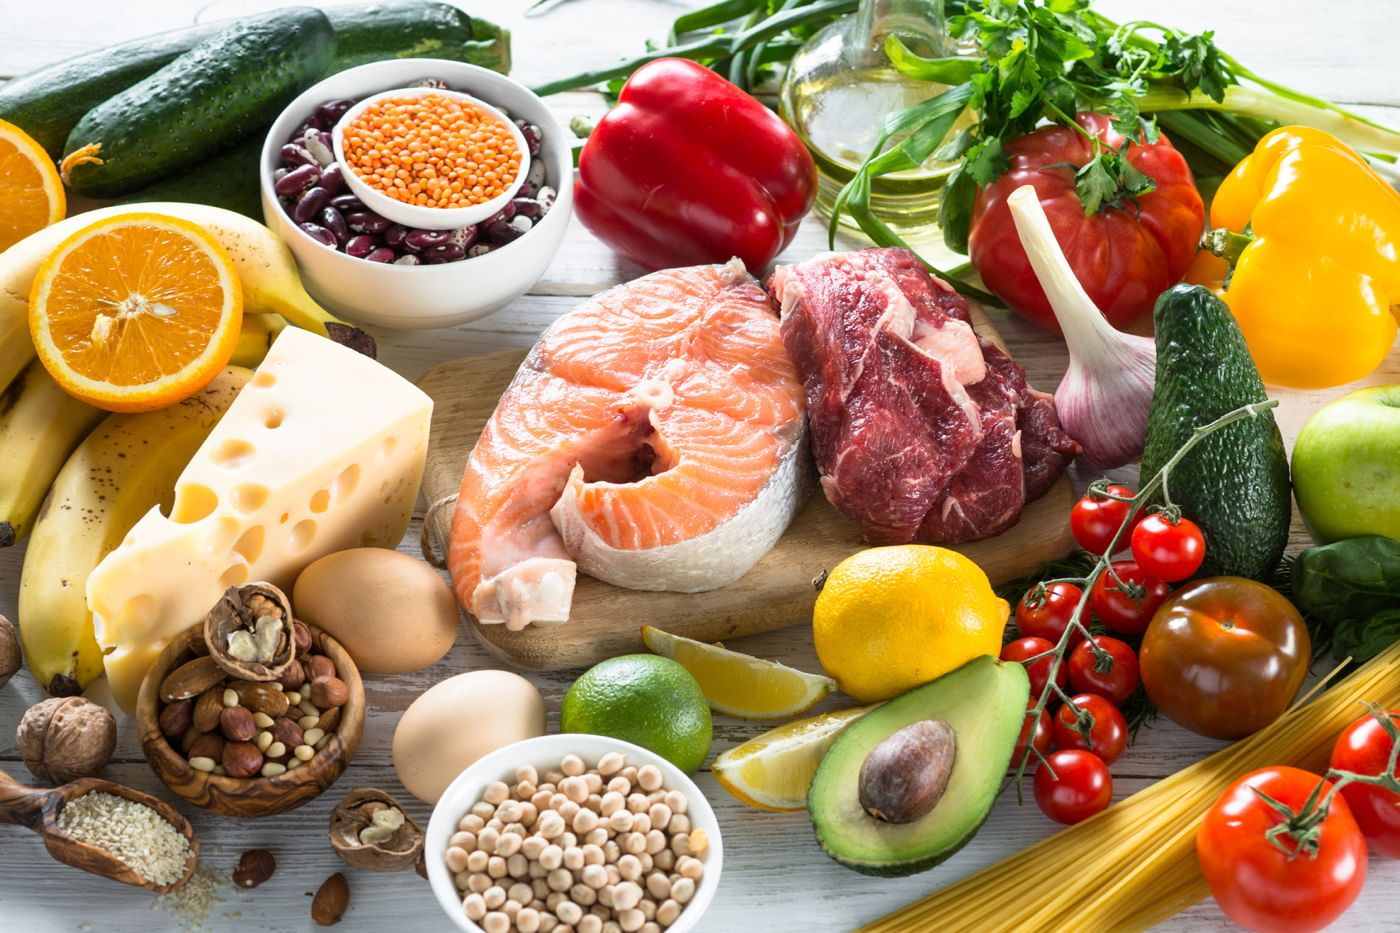 several foods are displayed on a counter. They include meats, cheese, nuts, and fruits.